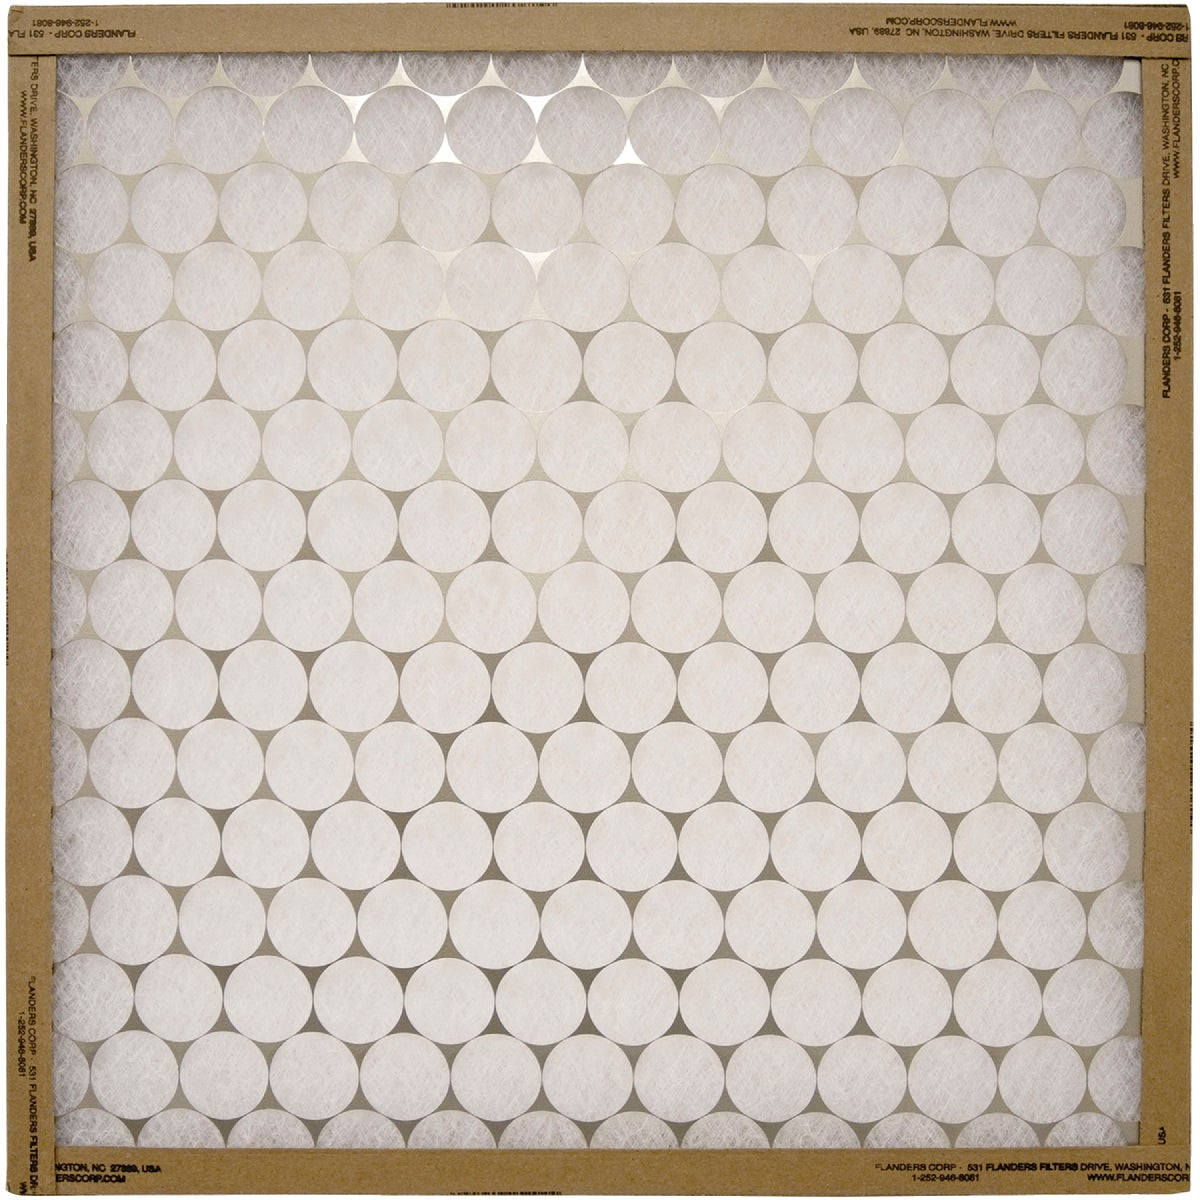 18X30 FURNACE FILTER - 10255.011830 by Flanders Corp